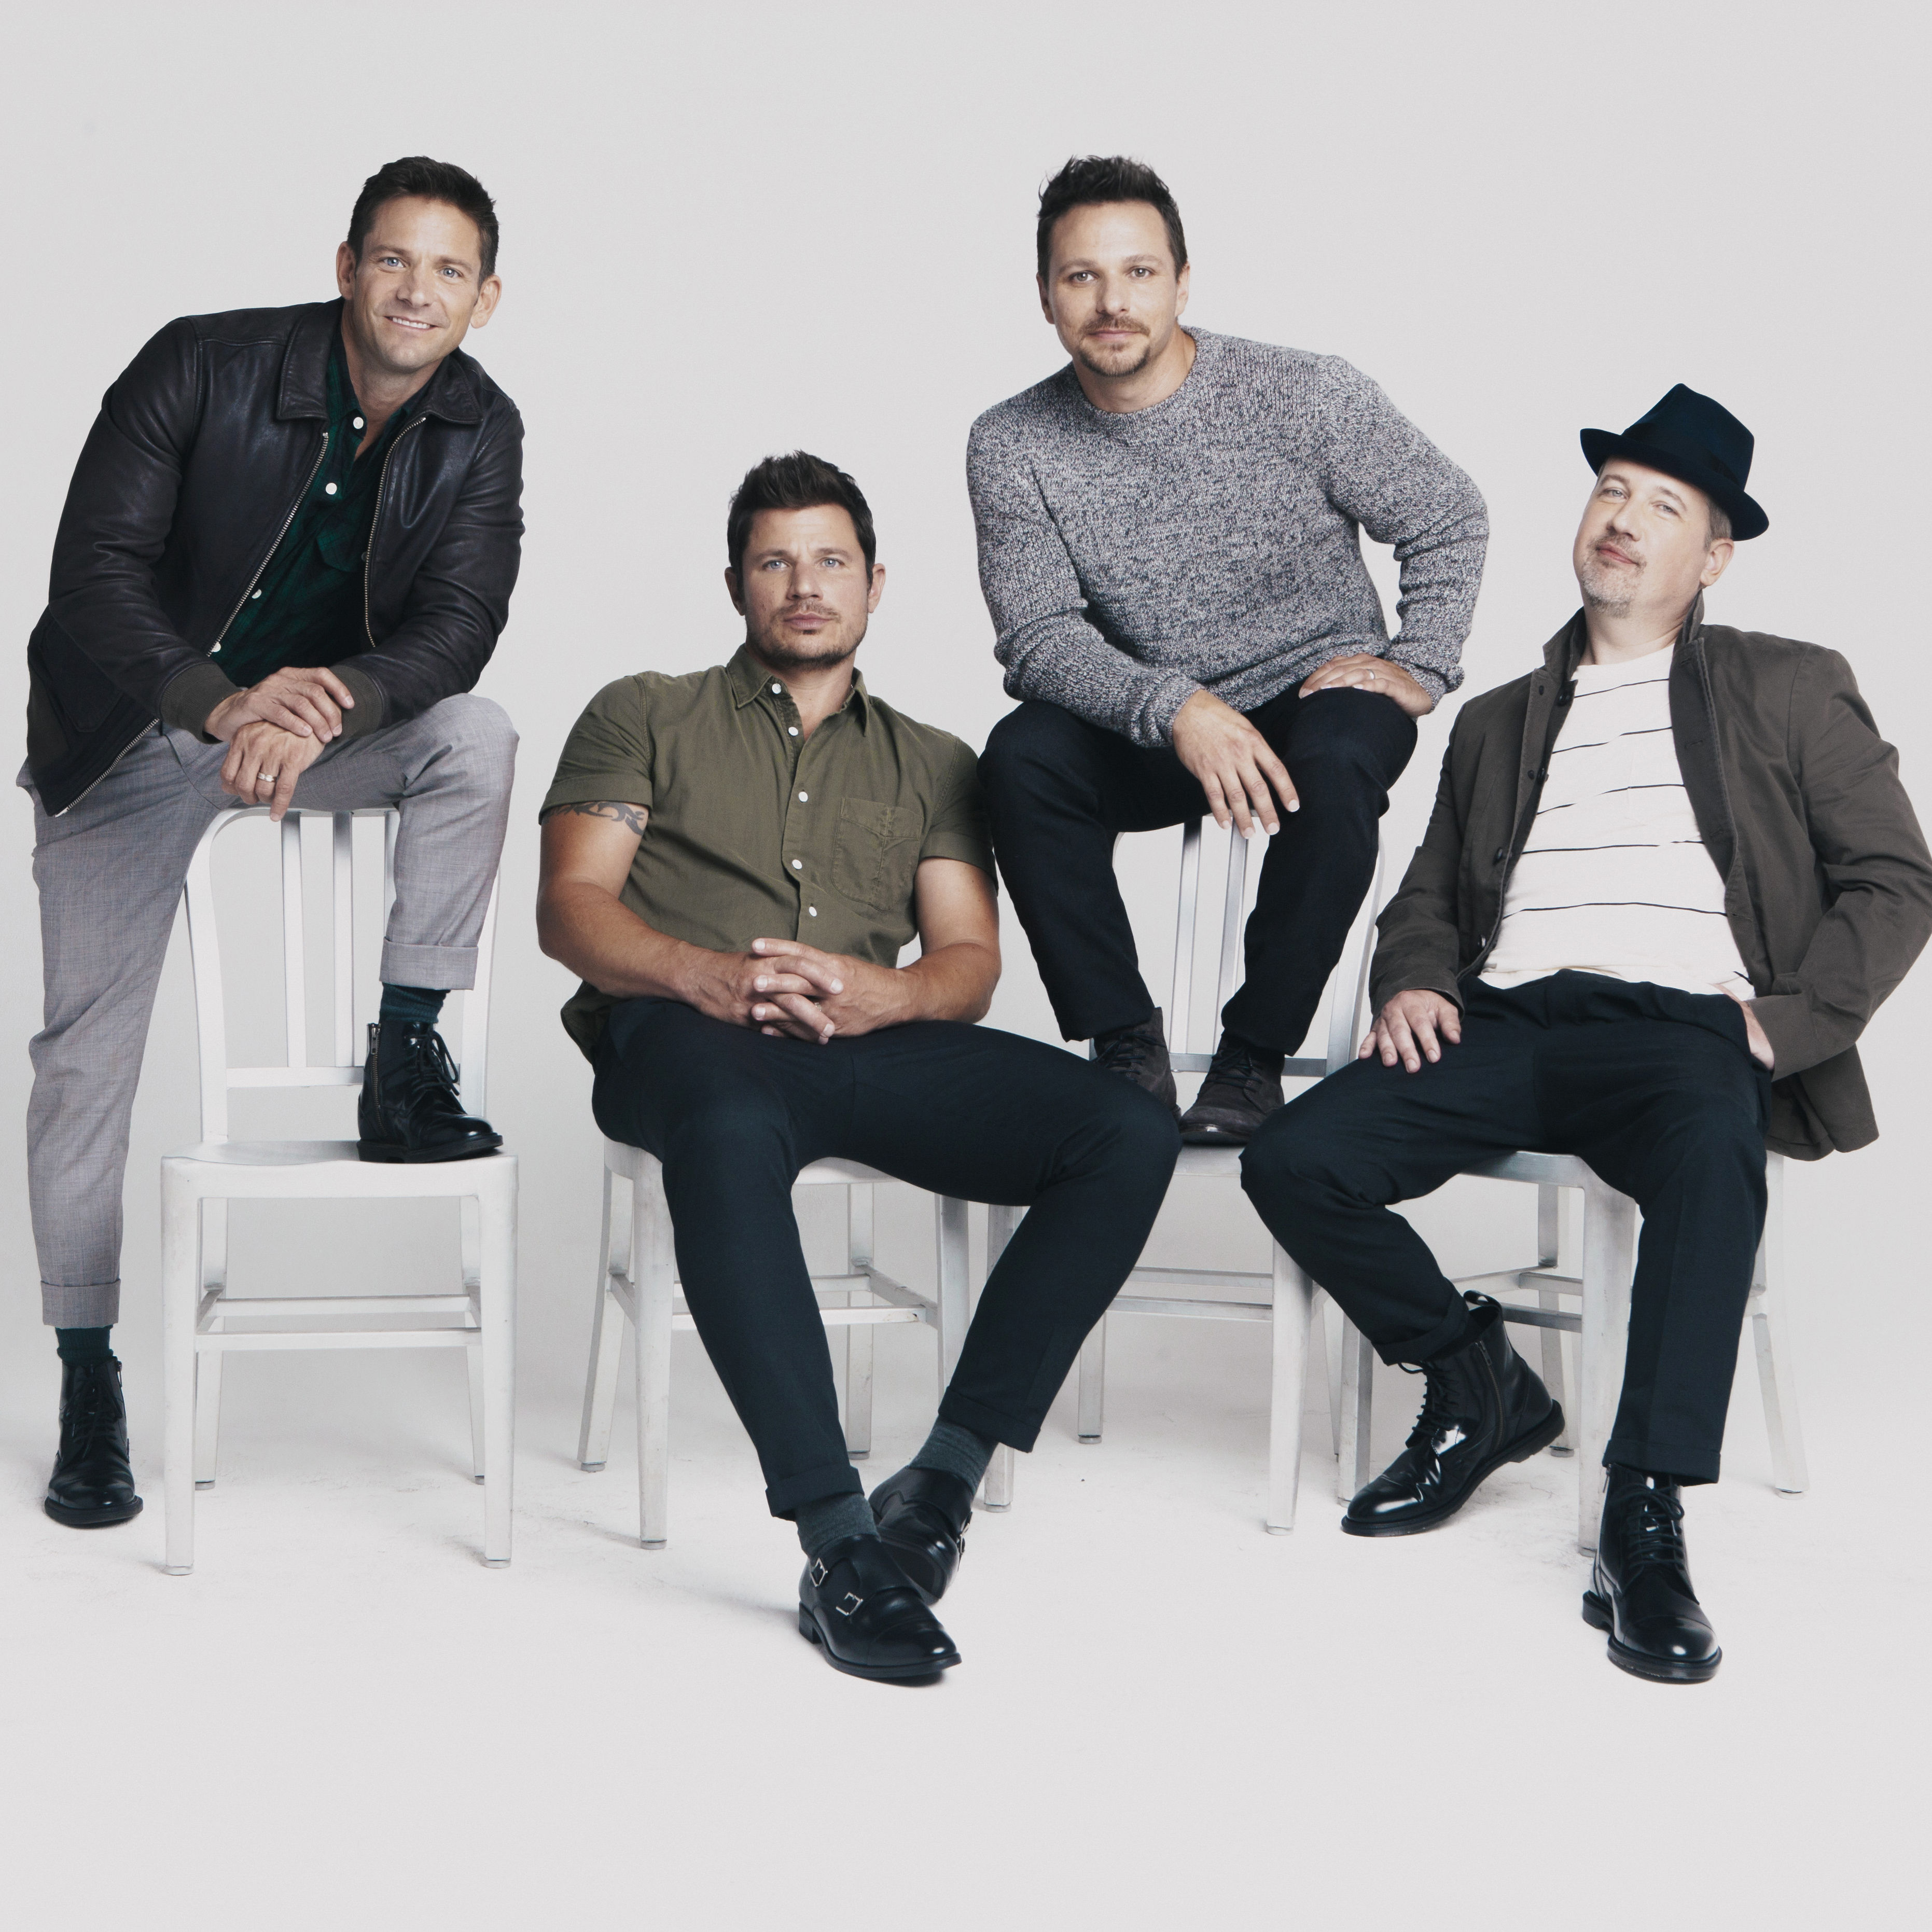 98 degrees   let it snow press photo by elias tahan xyreyr